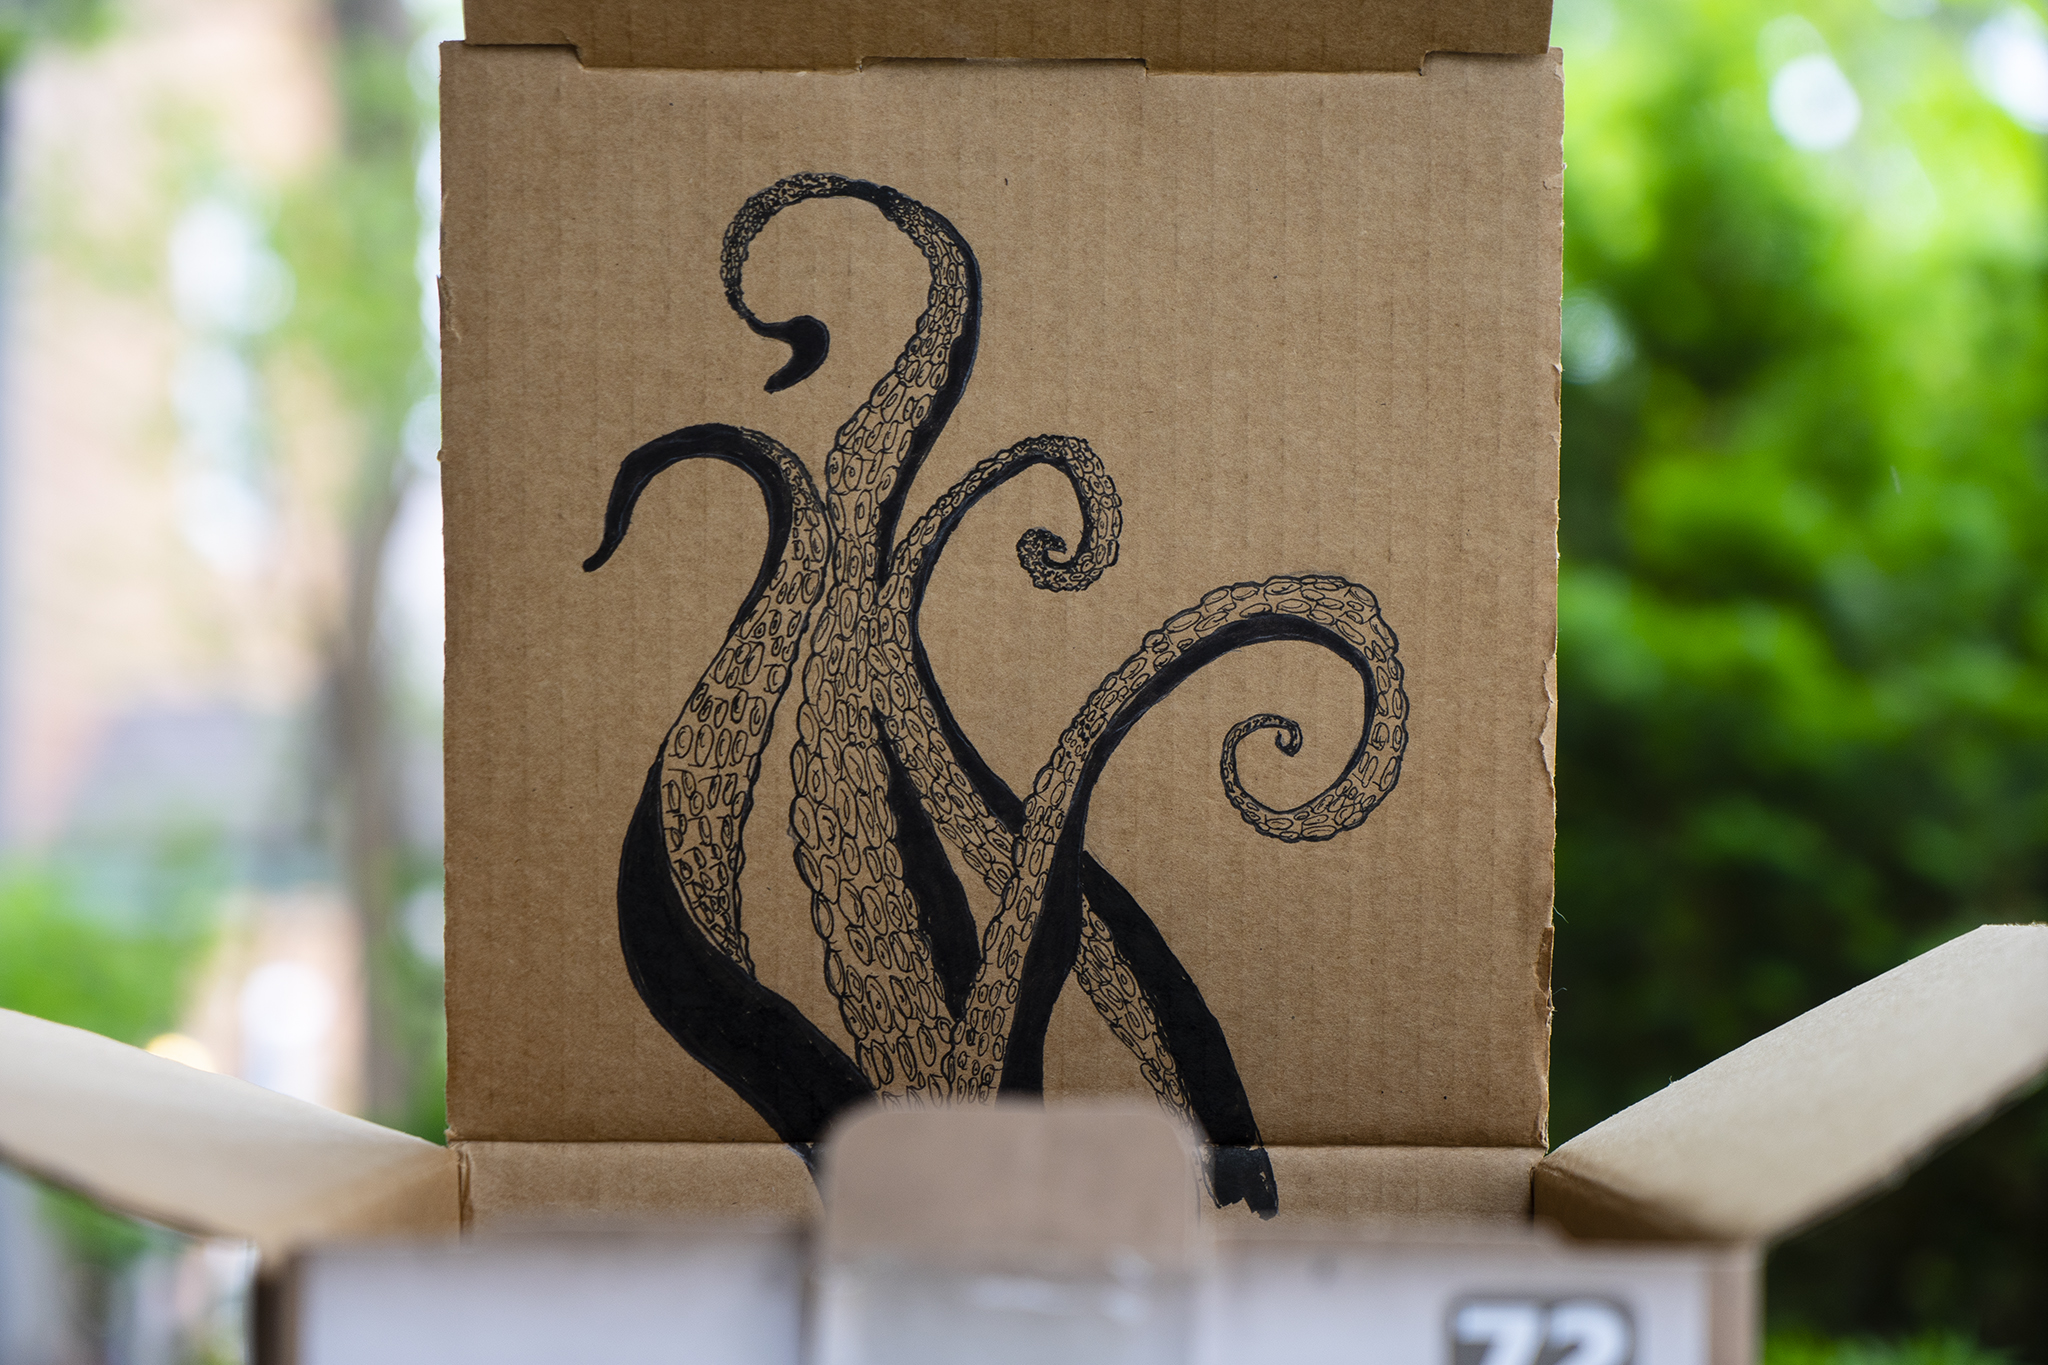 octopus tentacles on a box